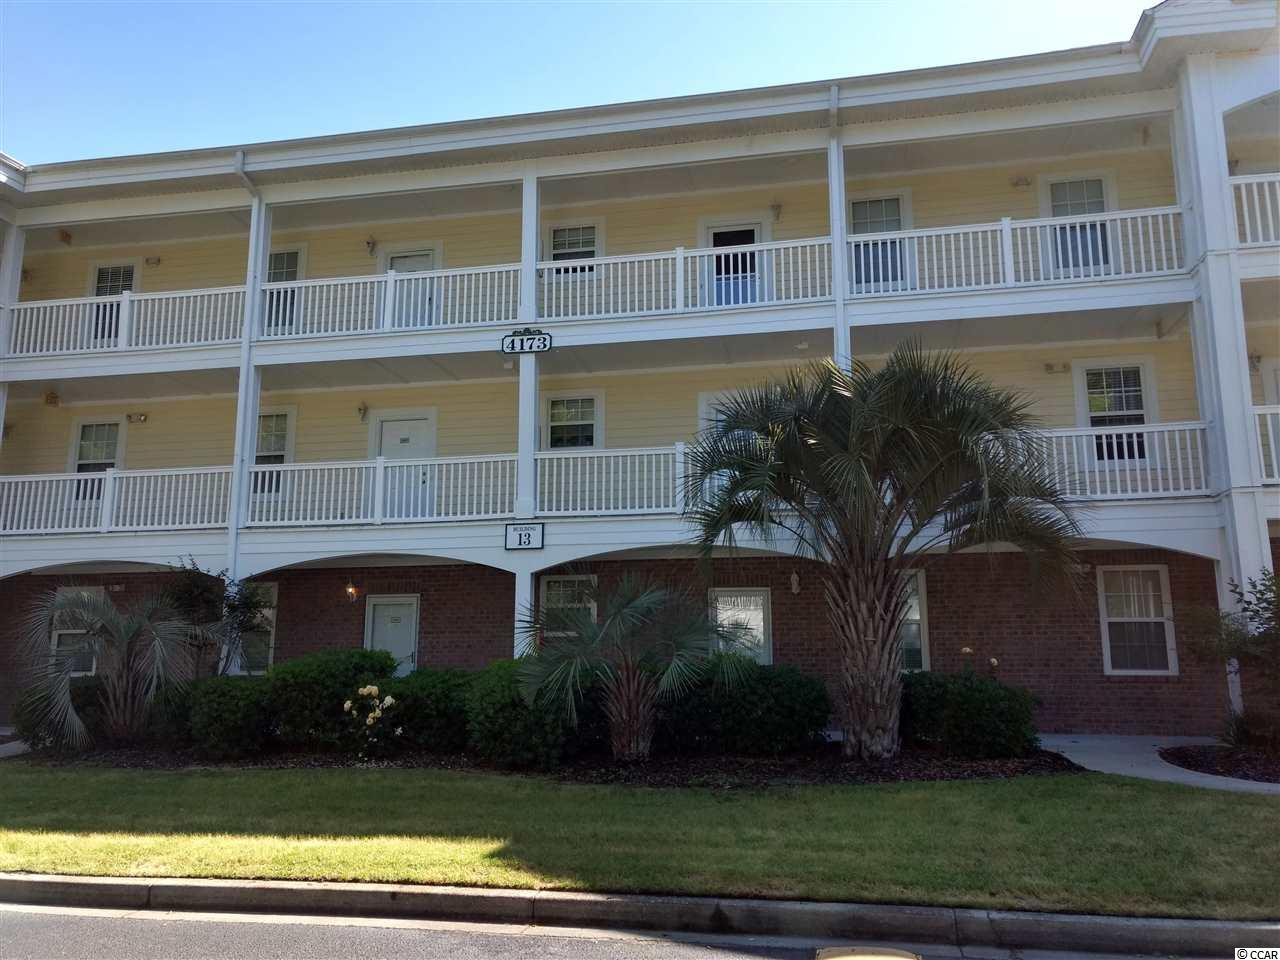 Well appointed furnished 2 bedroom/2 bath end unit at The Gardens at Cypress Bay.  This third floor unit has vaulted ceilings.  It also has a great view of the pool and because of its convenient location easy access to the pool and BBQ area.  This community is located near Hwy 31, Little River Waterfront, hospital, NMB and beaches.